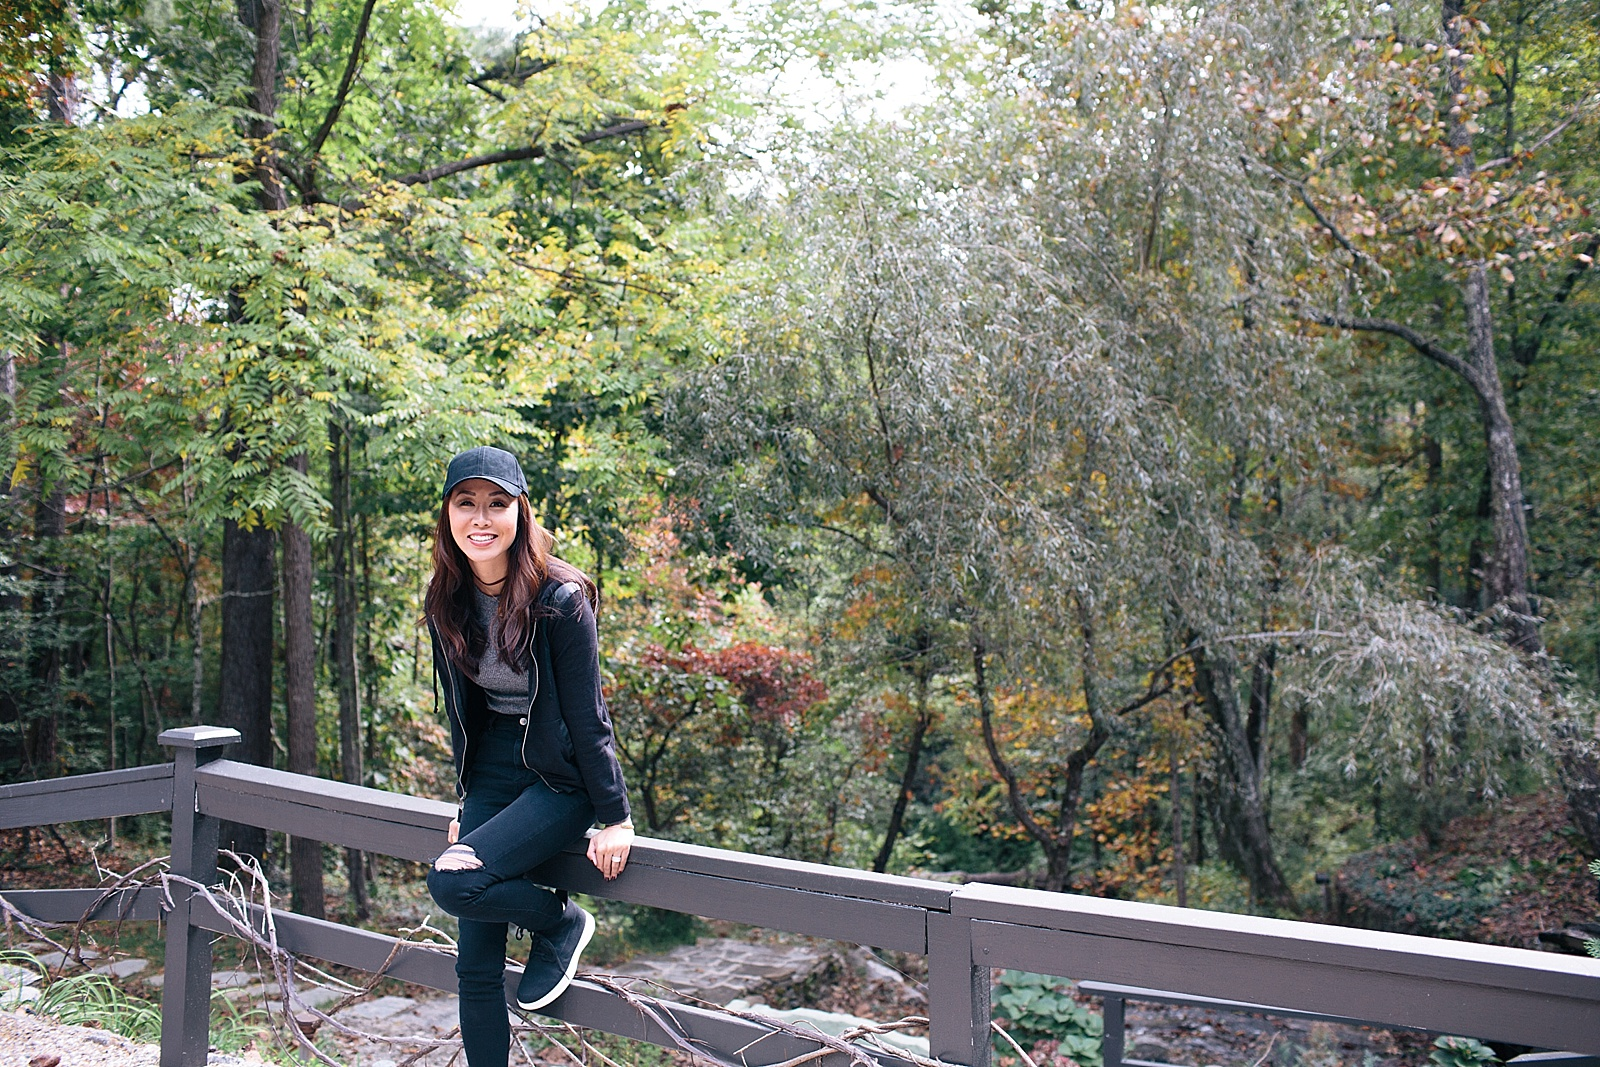 diana-elizabeth-blog-travel-blogger-fit-flop-high-tops-fashion-north-carolina-hendersonville-little-willow-falls-20161021_0012